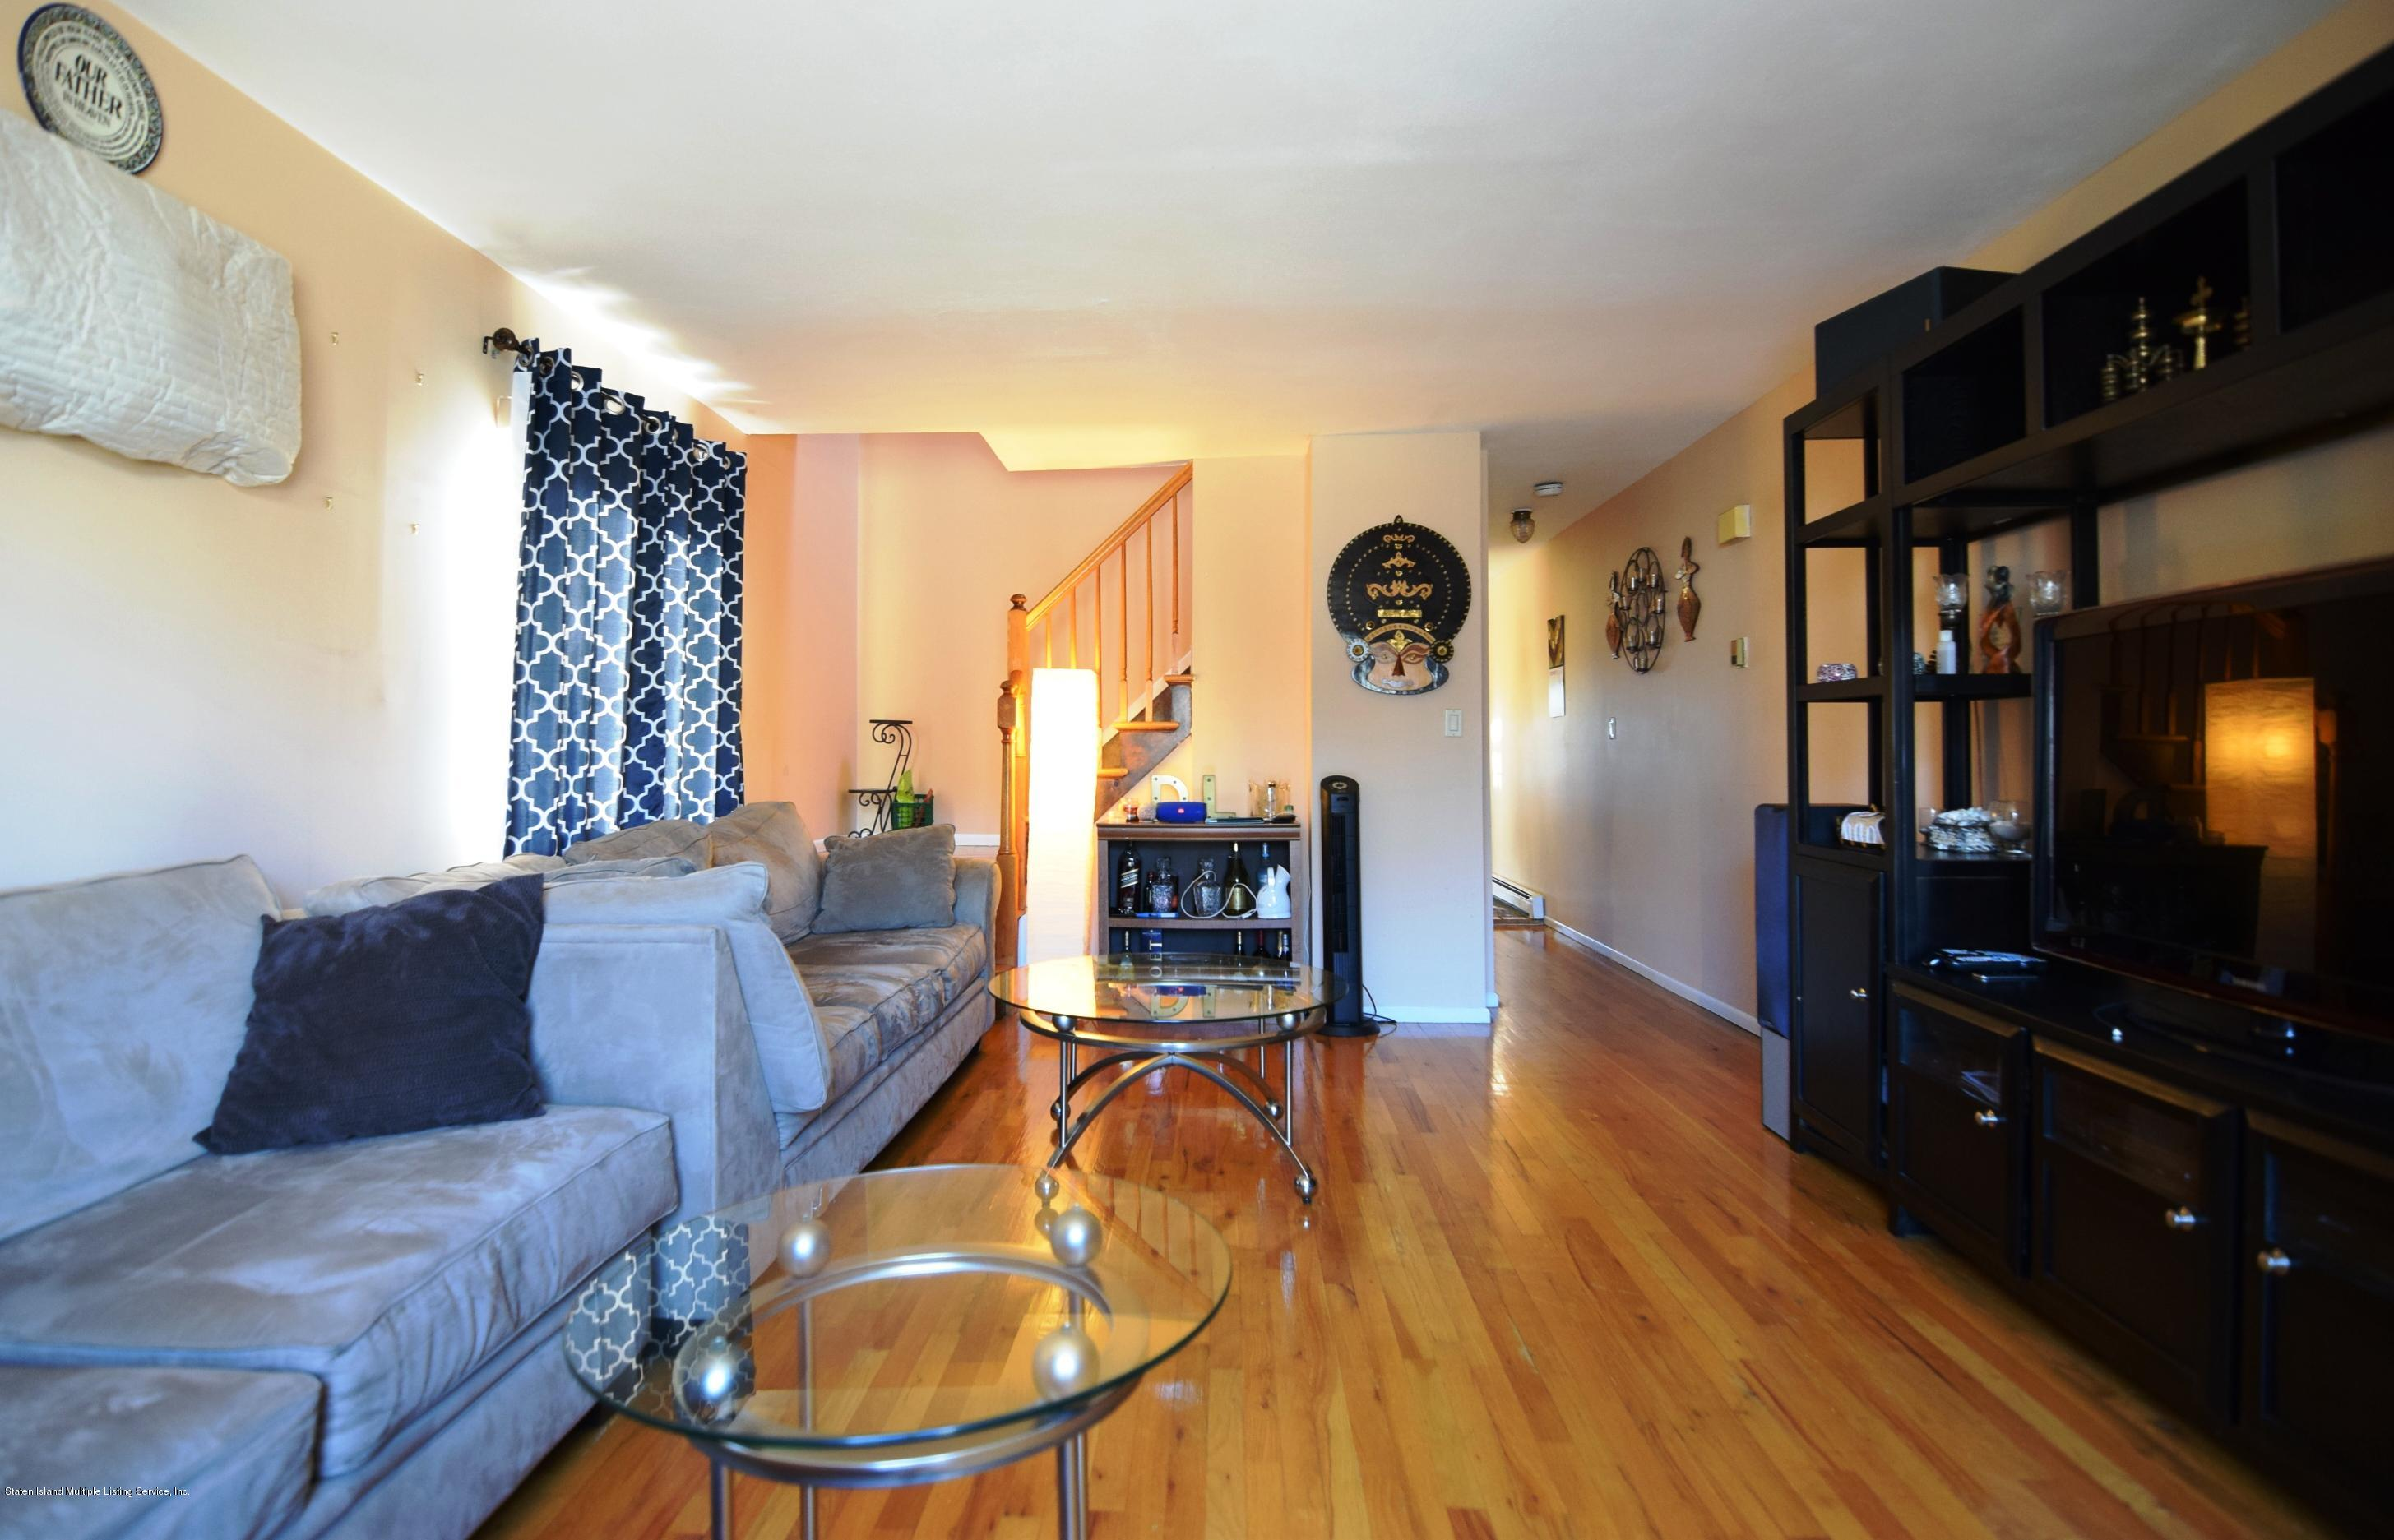 Single Family - Attached 140 Roosevelt Avenue  Staten Island, NY 10314, MLS-1124039-15